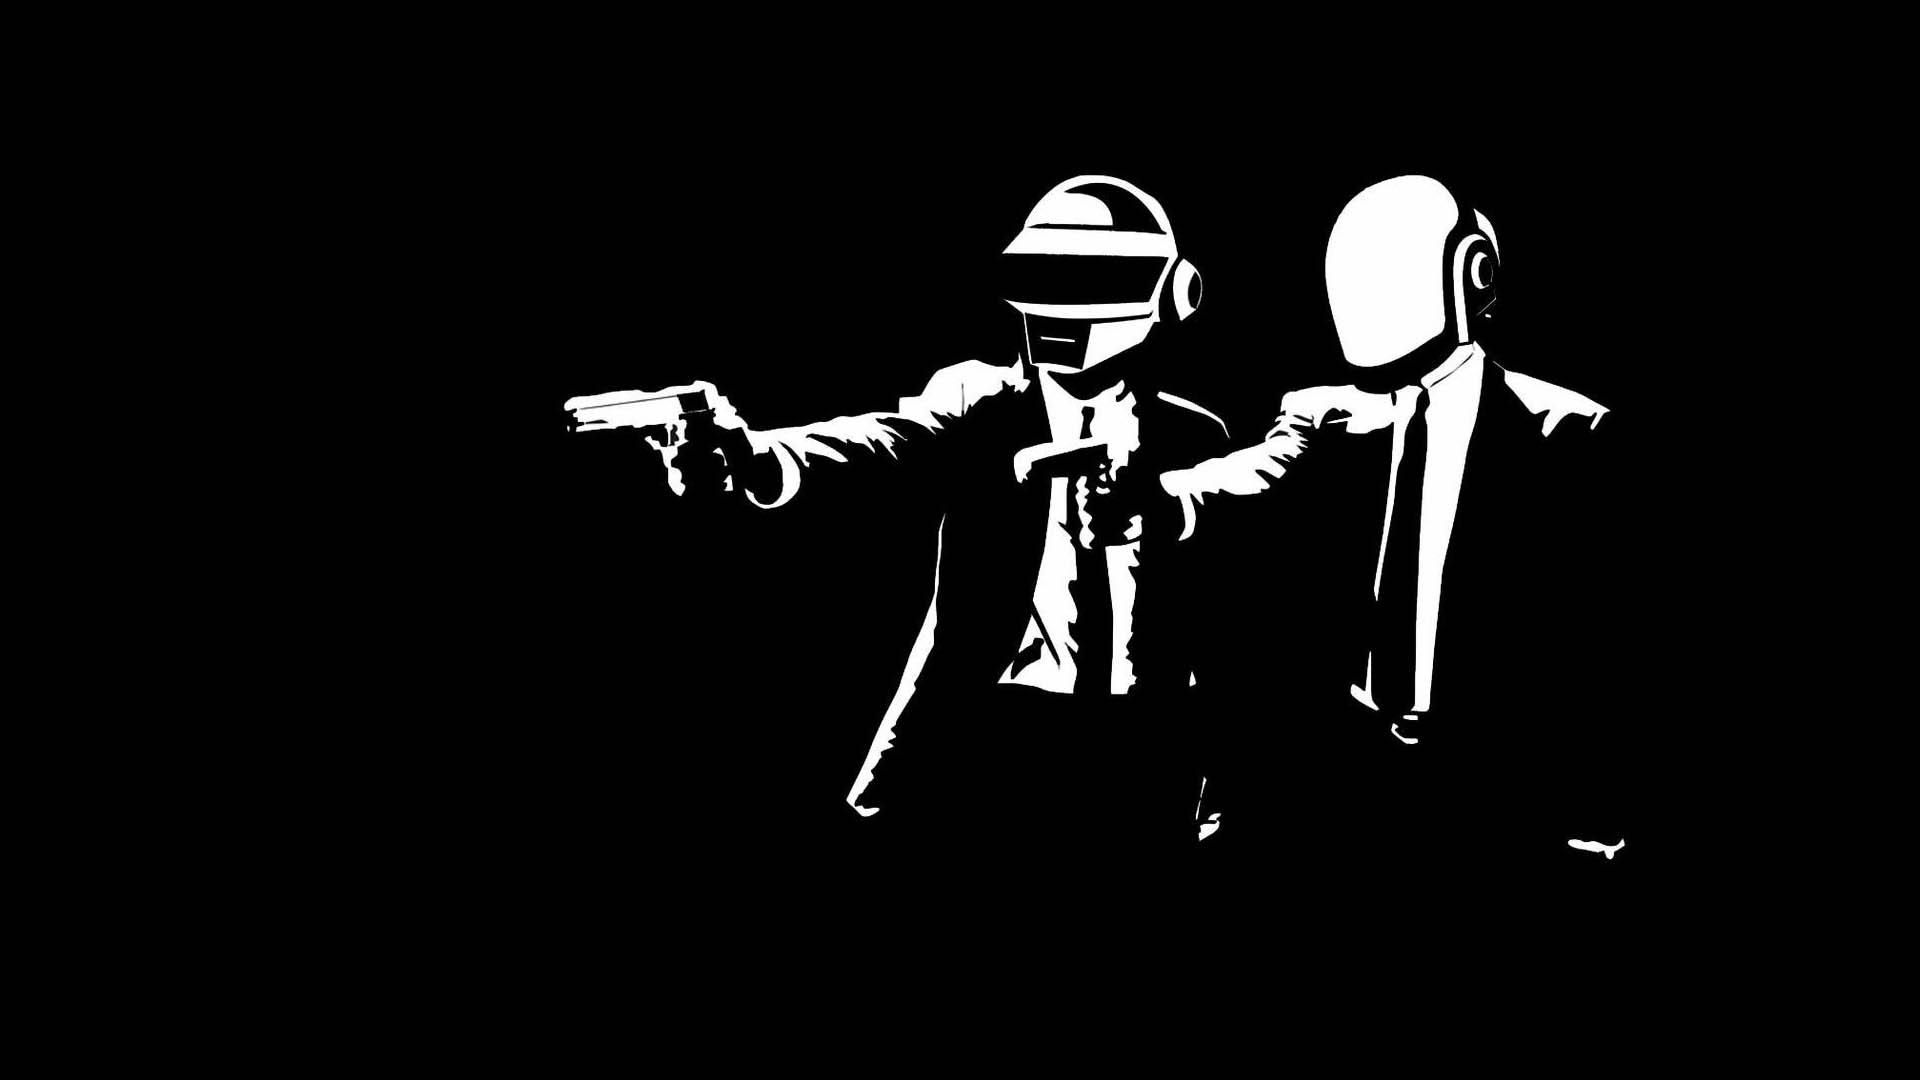 Daft Punk Music Artwork